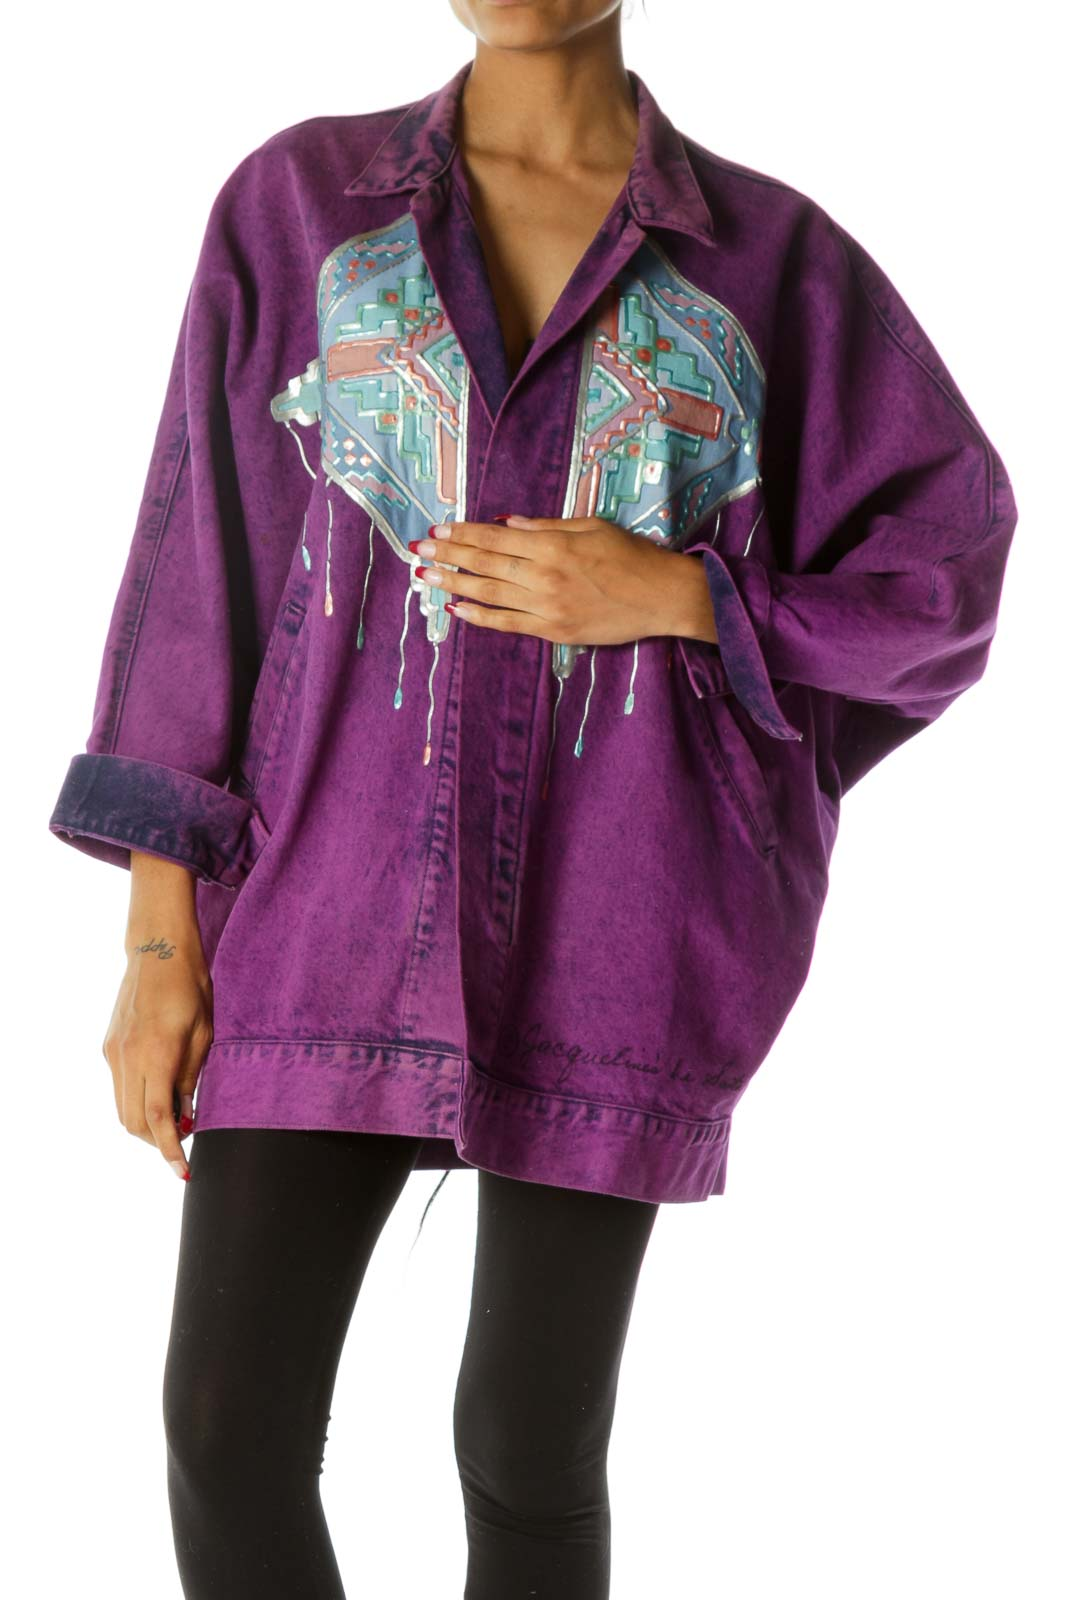 Purple Blue Pink Oversize Front and Back Design Pocketed Vintage Denim Jacket with Signature on Waist